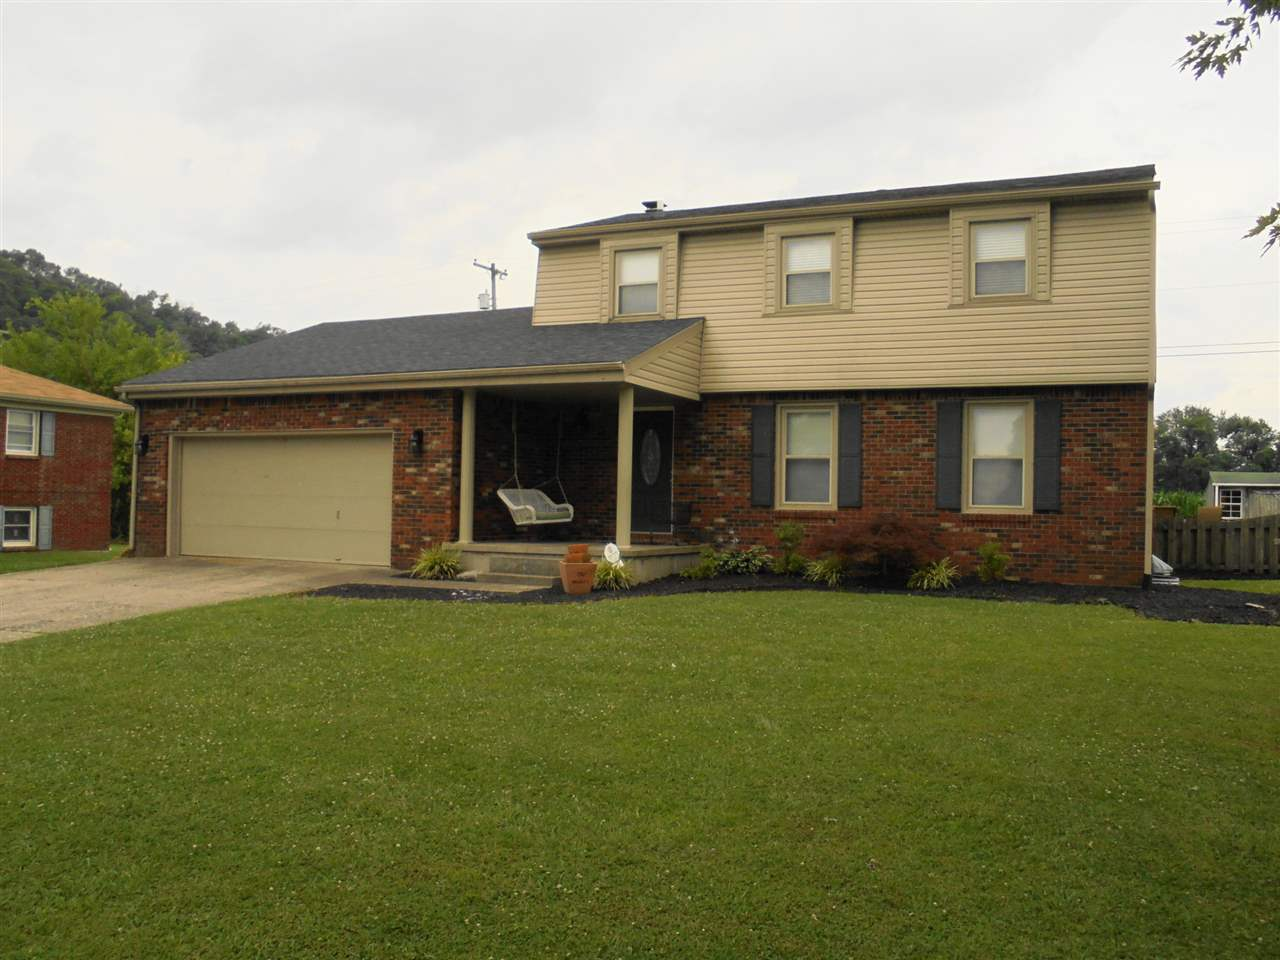 Photo 1 for 214 Deatherage Dr Carrollton, KY 41008